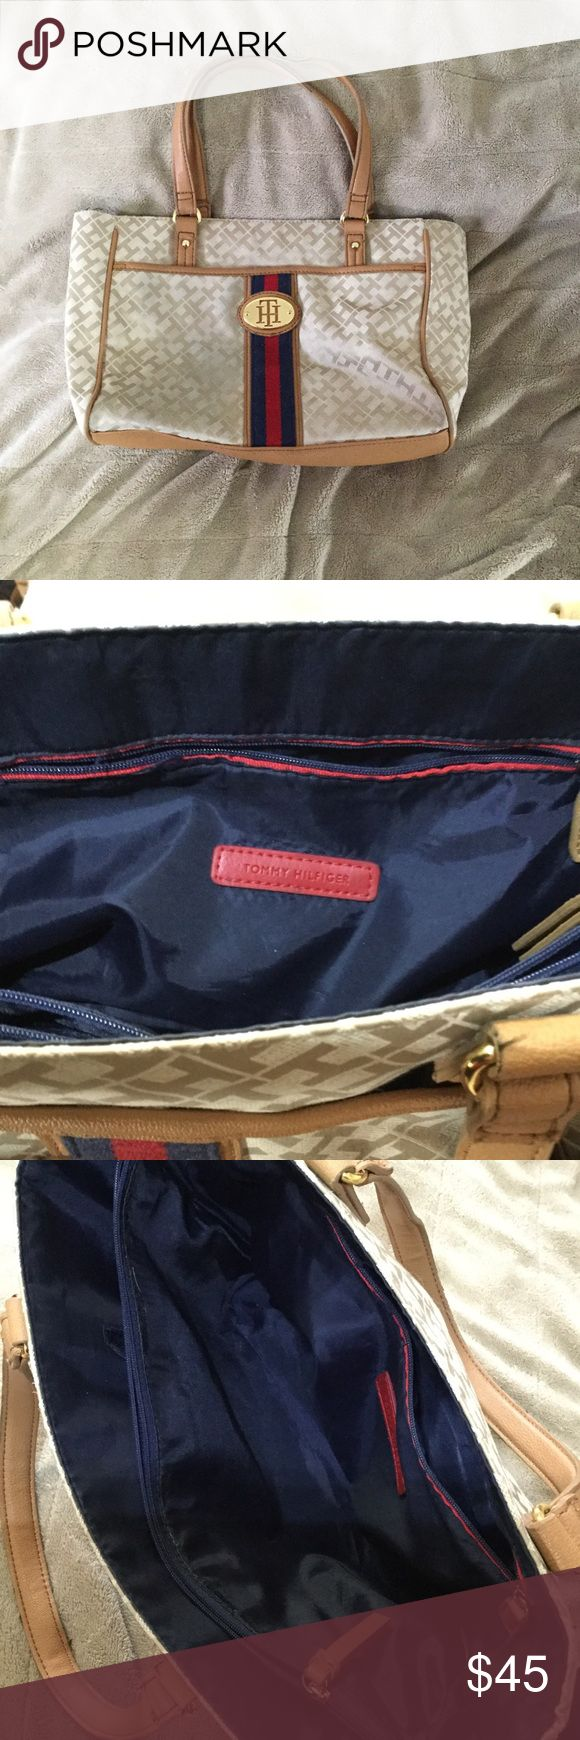 Tommy Hilfiger Tote In good condition. Would go well with Tommy Jeans! Tommy Hilfiger Bags Totes